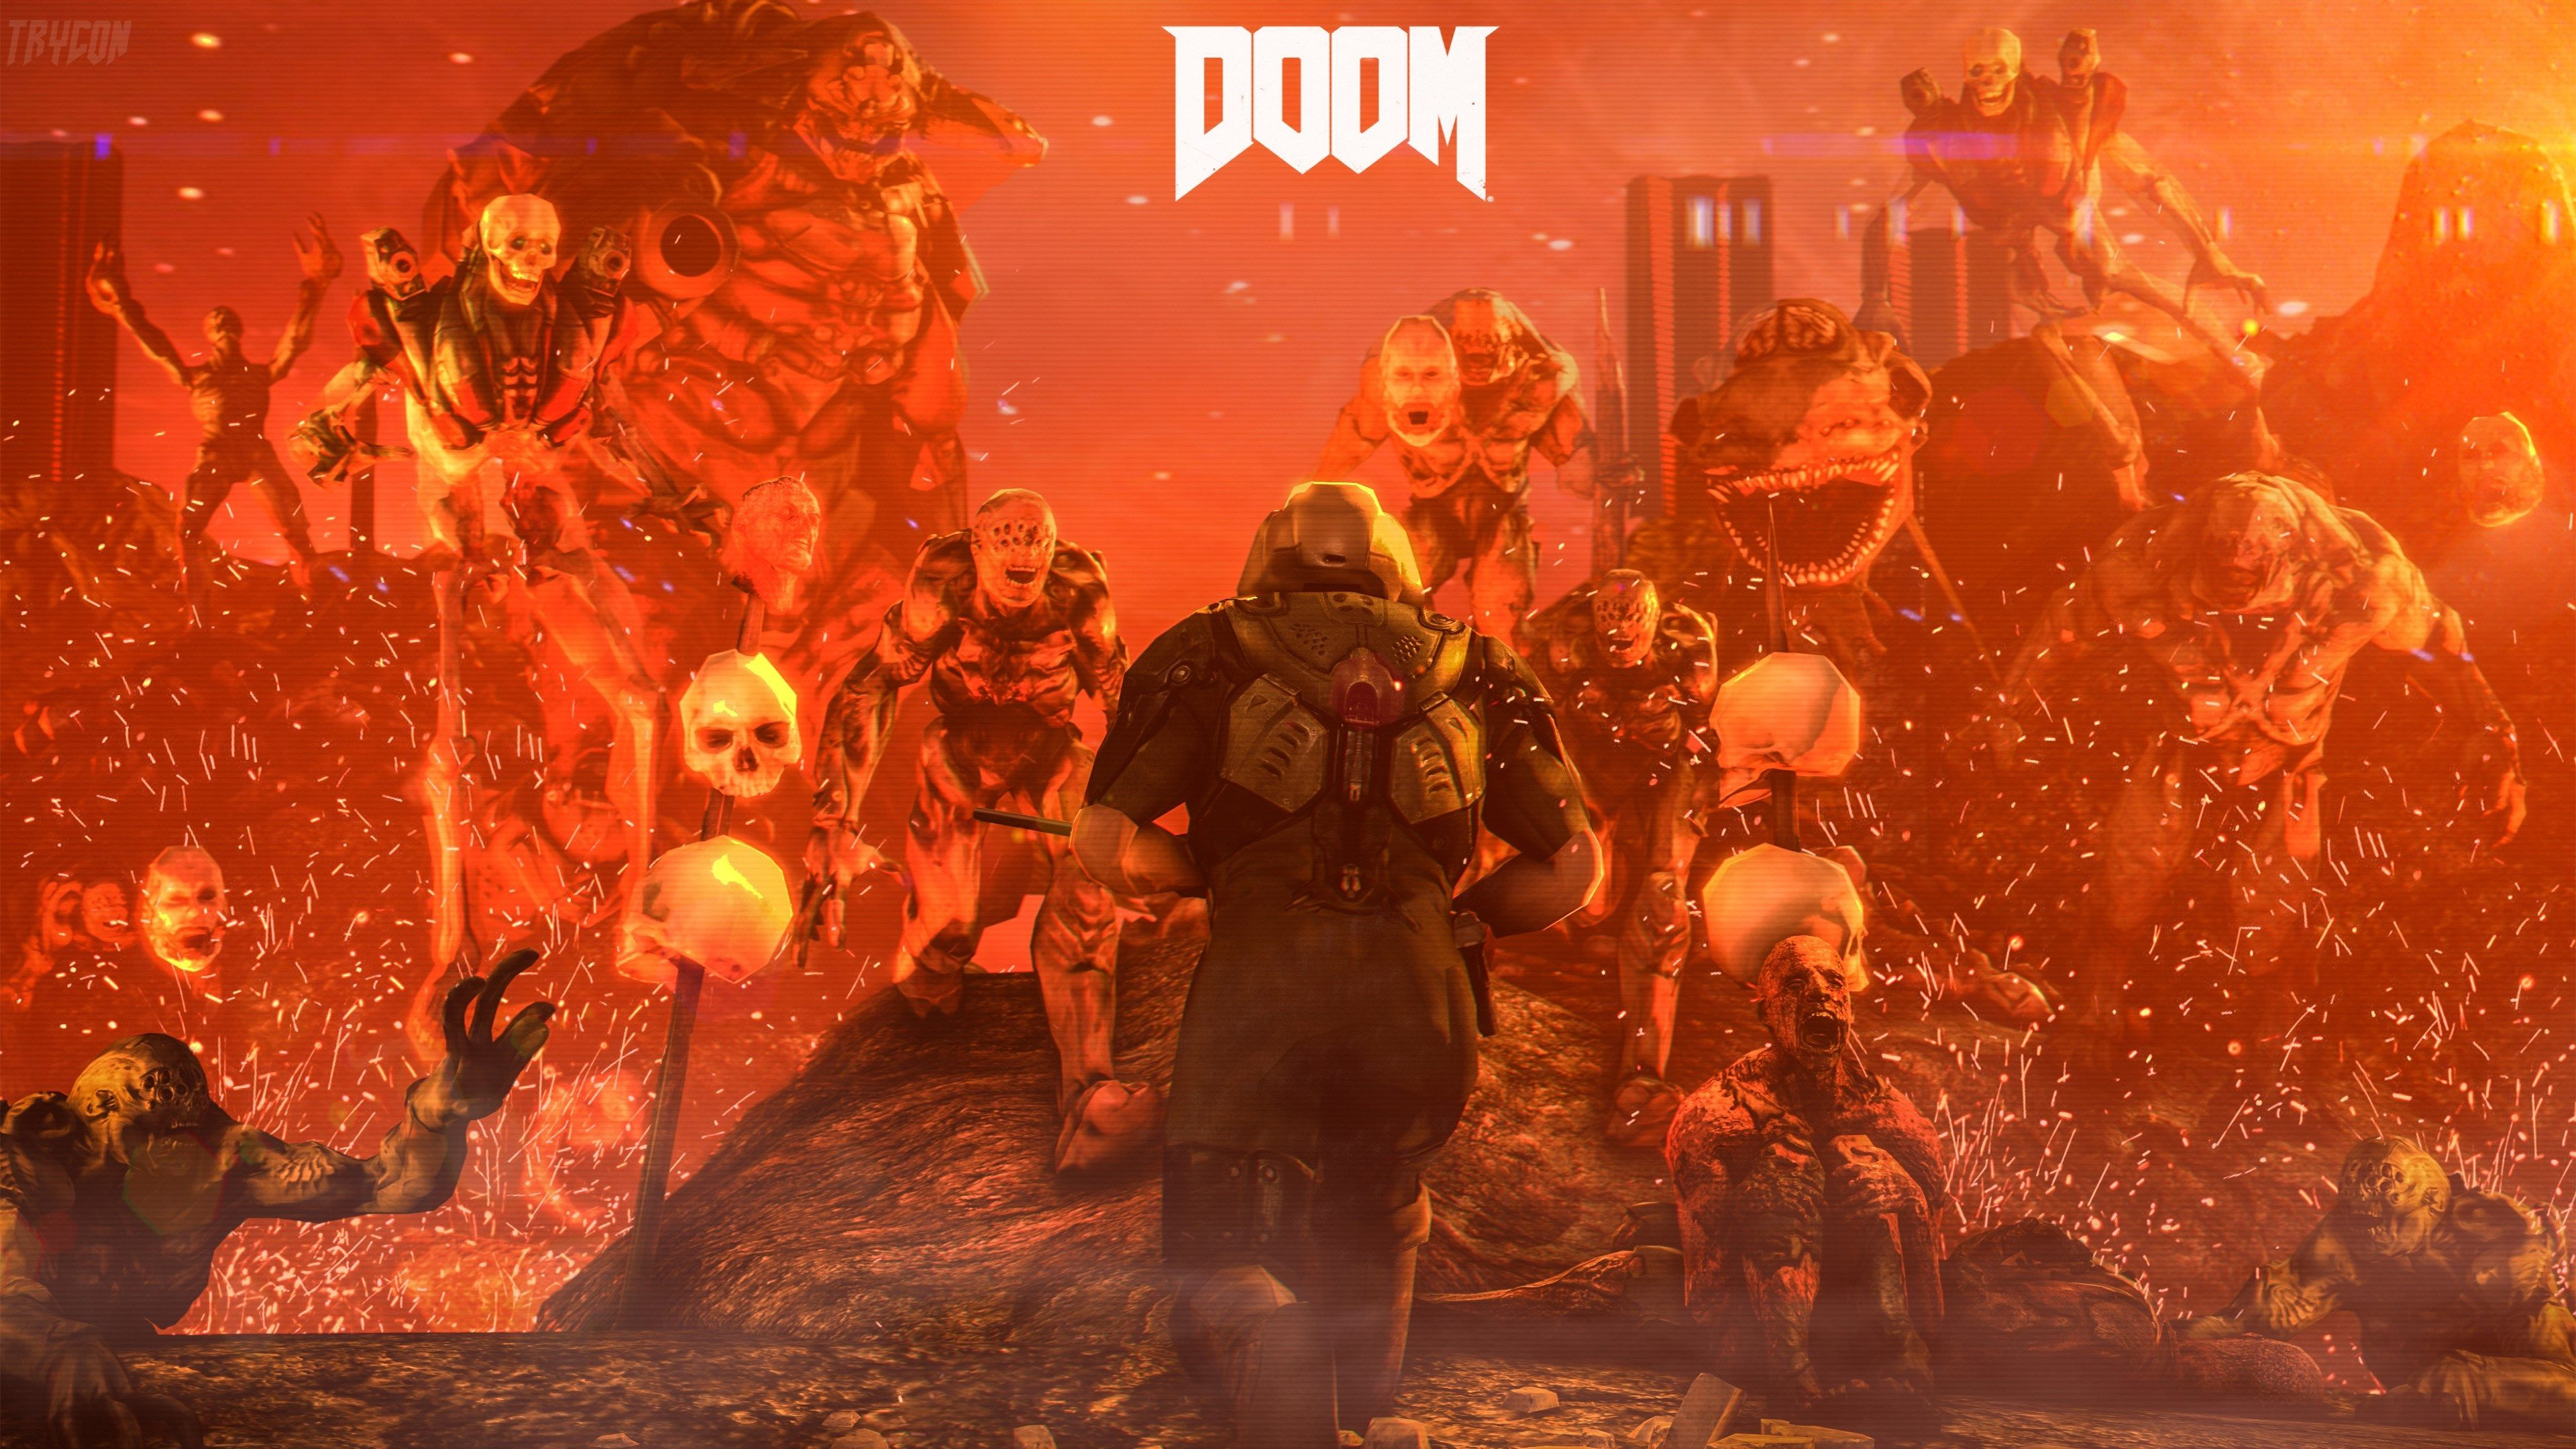 3840x2160 Doom 4k Background Hd Desktop Doom 4 Art Wallpaper Doom Cover